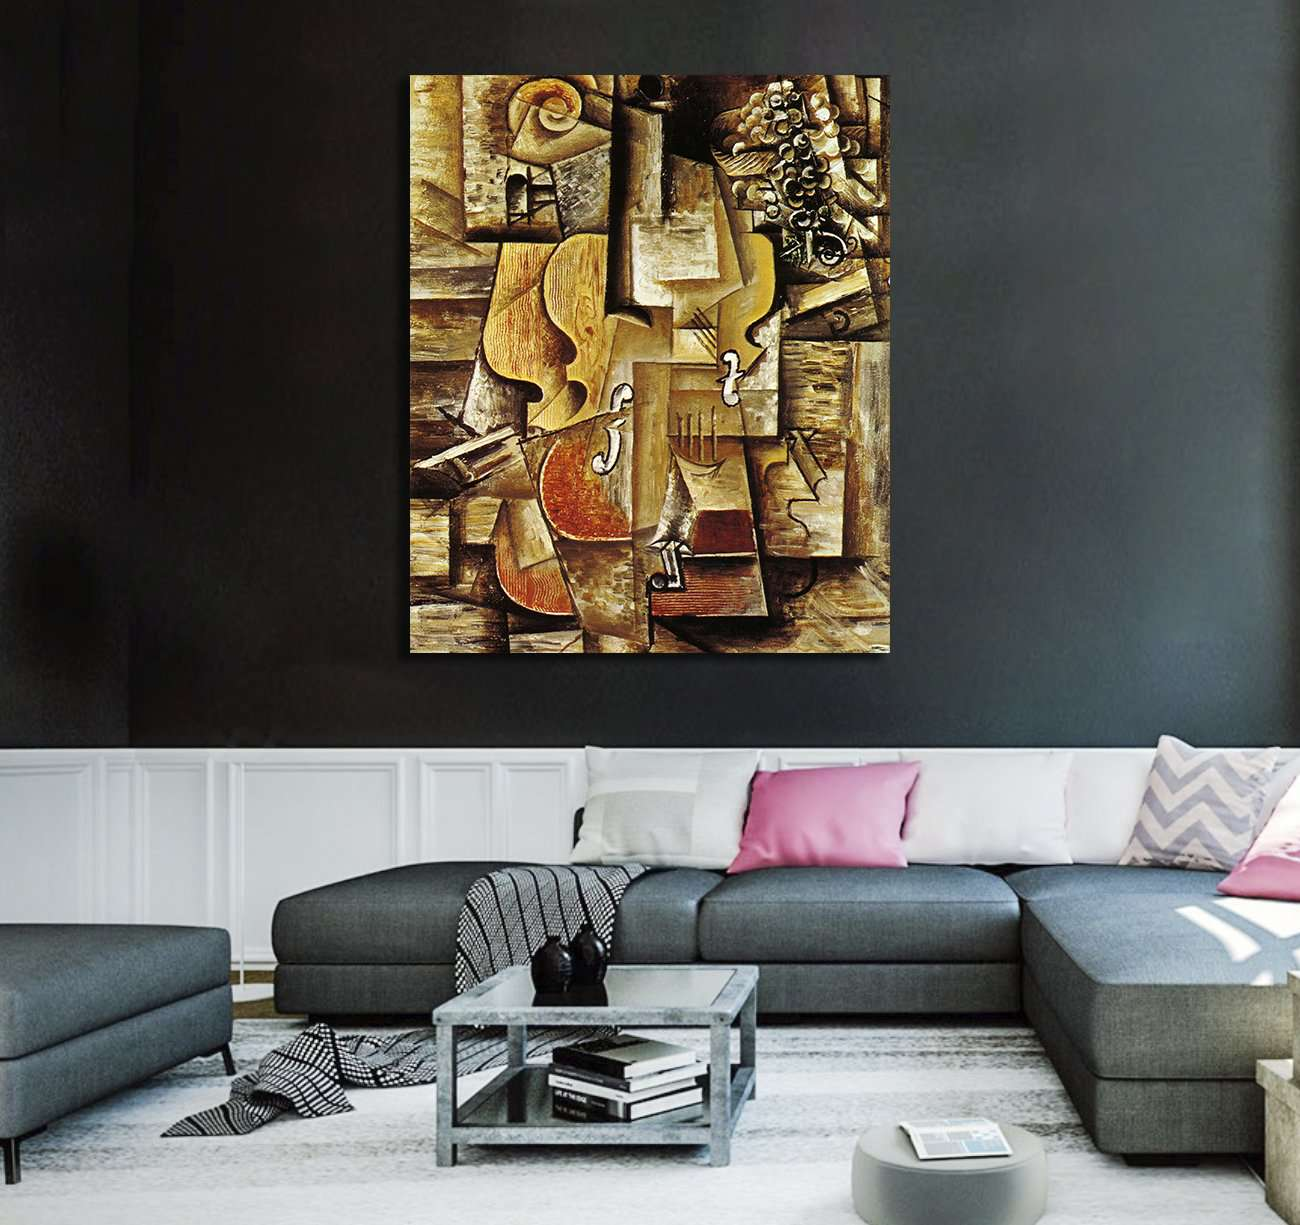 Kunst Violin And Grapes By Pablo Picassoframed Canvaswall Art Hd Print Paint Antiquitäten Kunst Drukgreen Bt